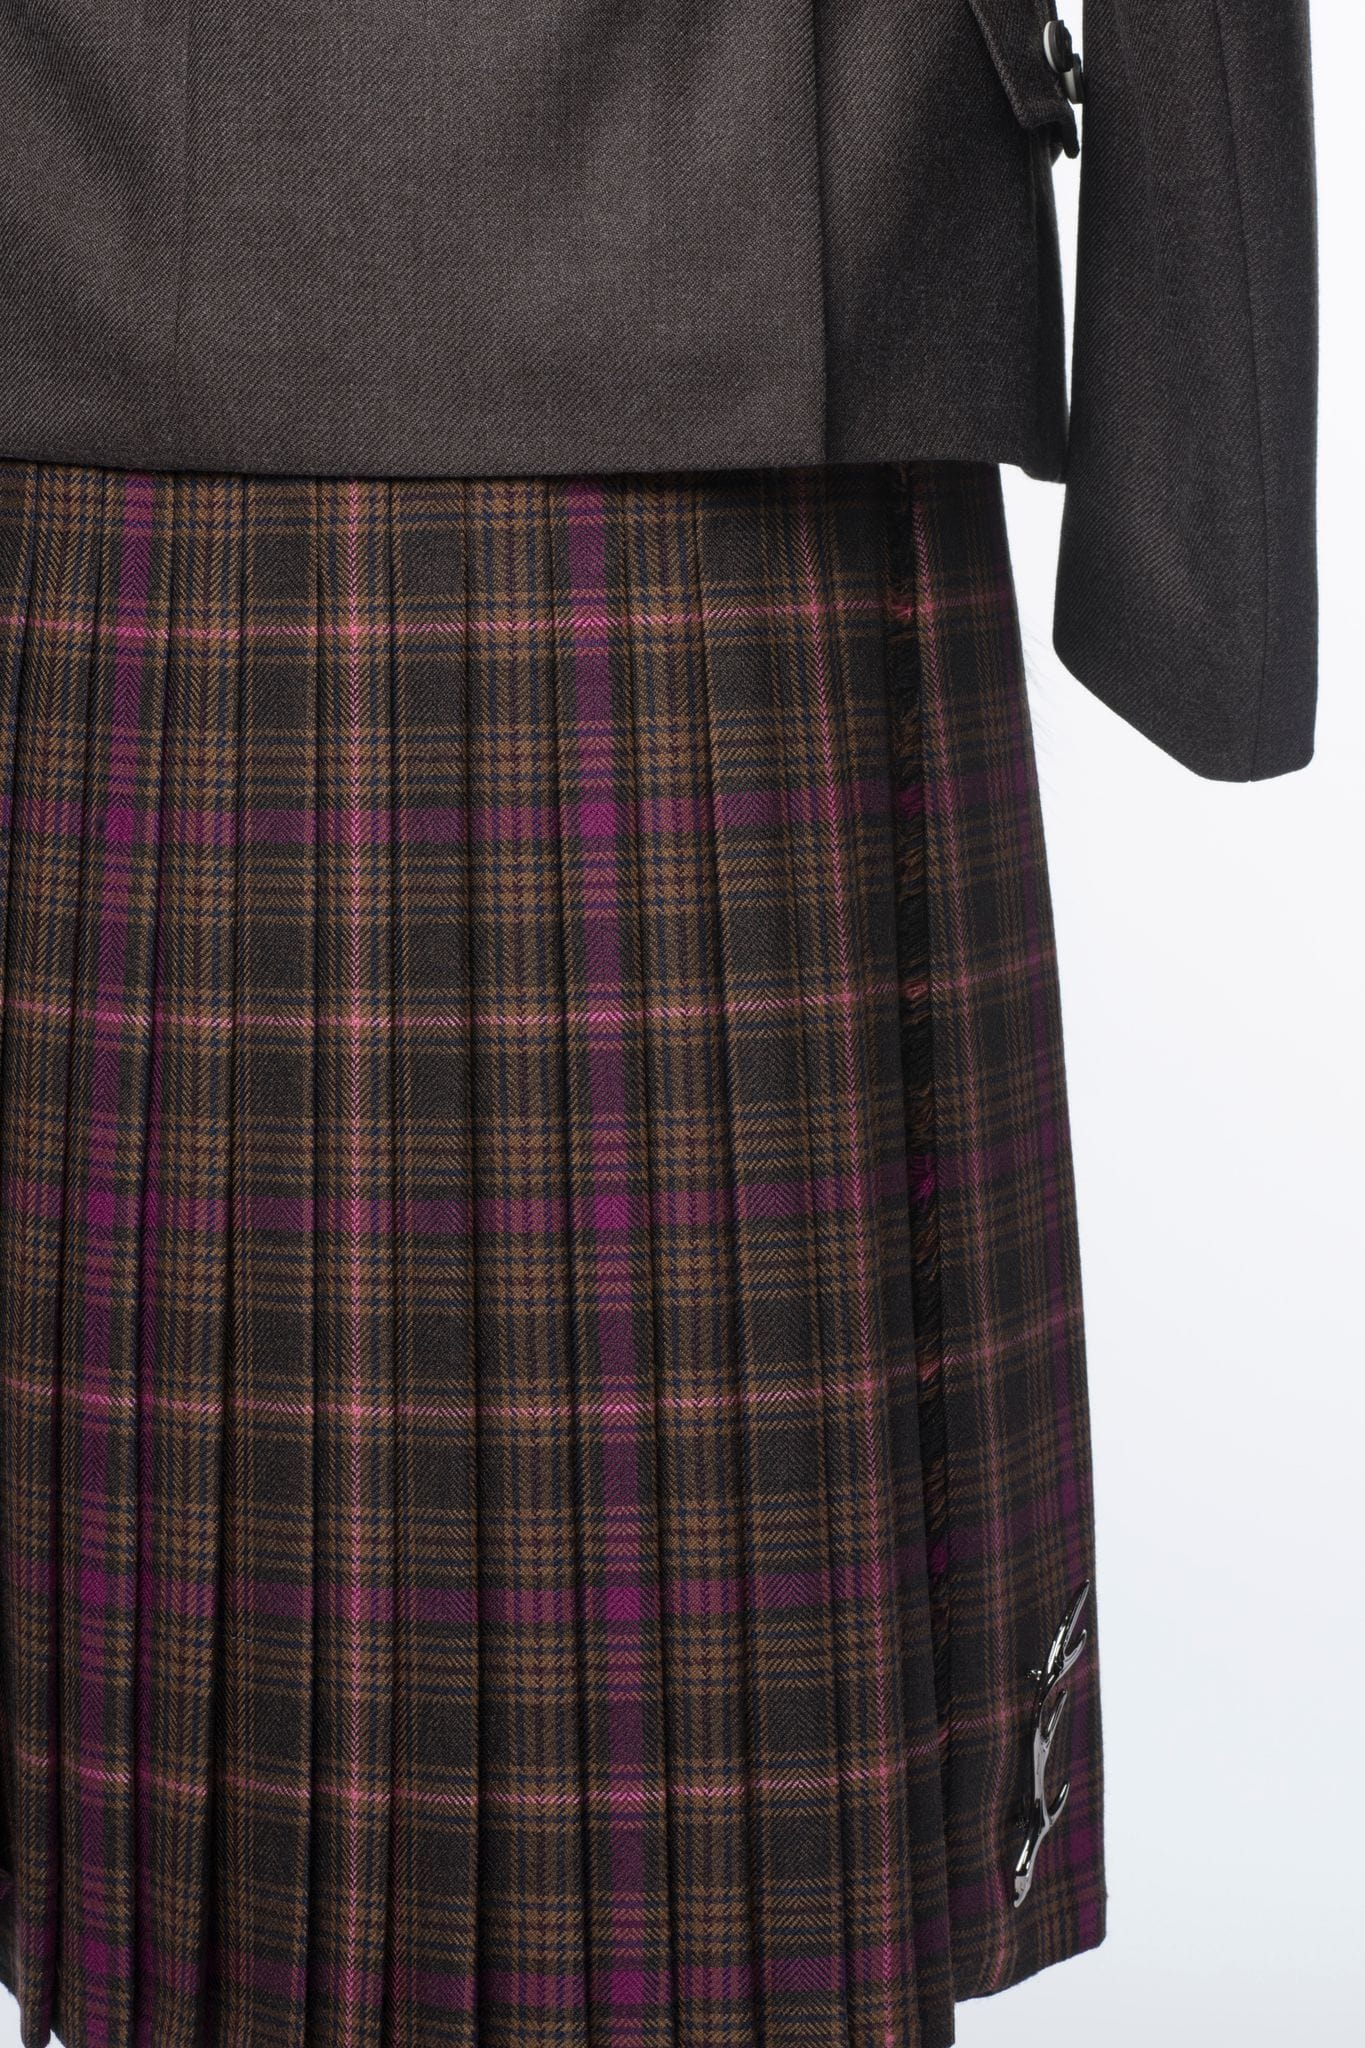 8 Yard Fully Handmade Kilt - Choose Your Tartan - MacGregor and MacDuff